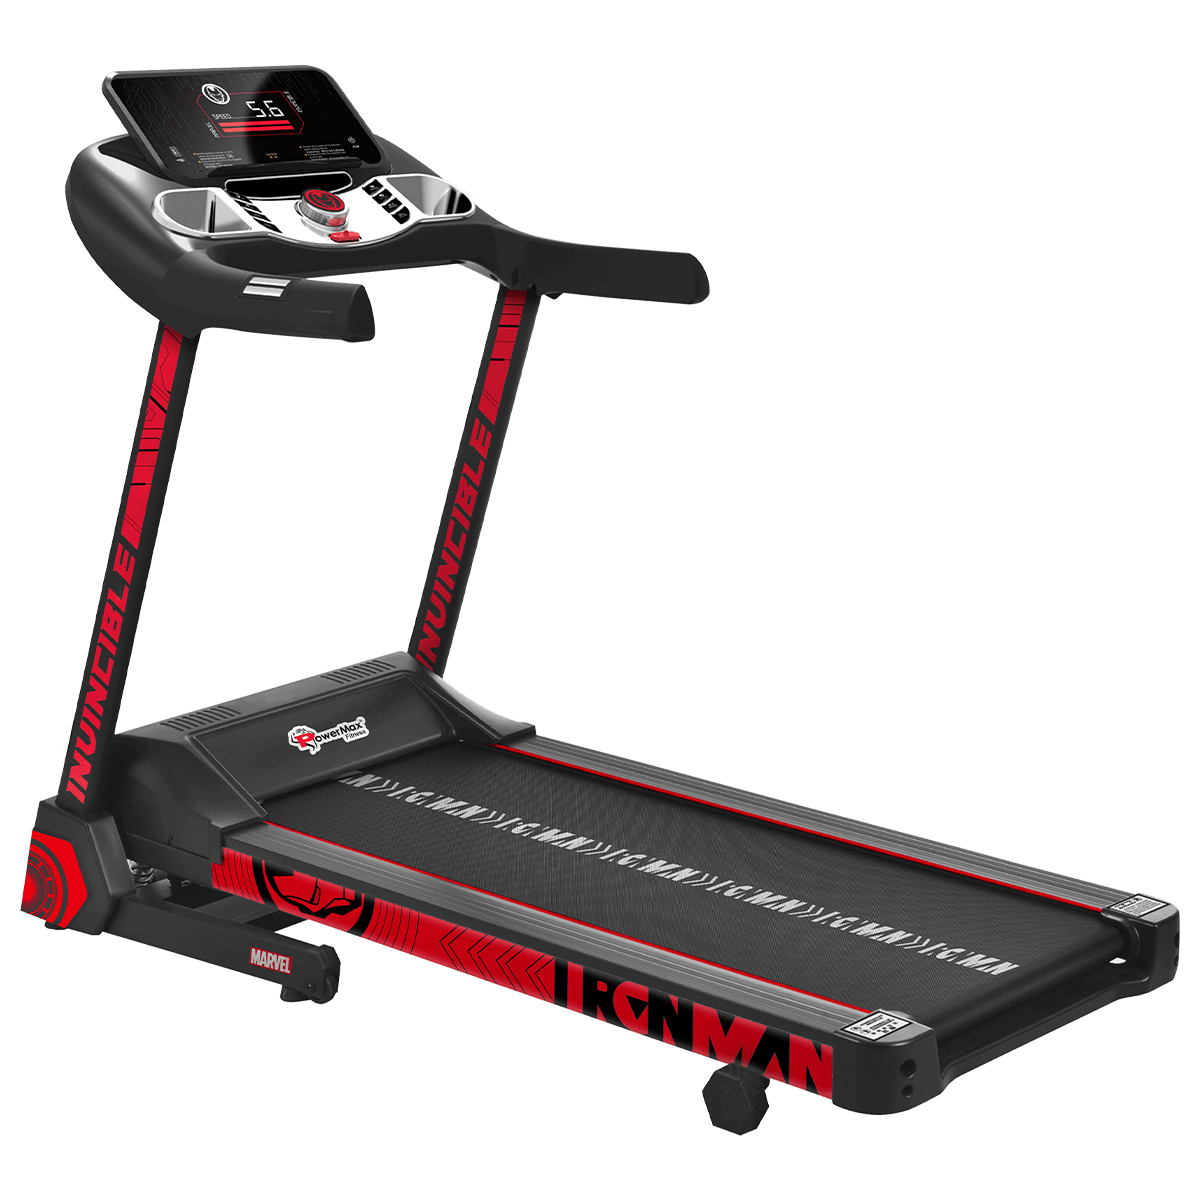 MTA-2500 Motorized Treadmill with Automatic Lubrication and Jumping Wheels